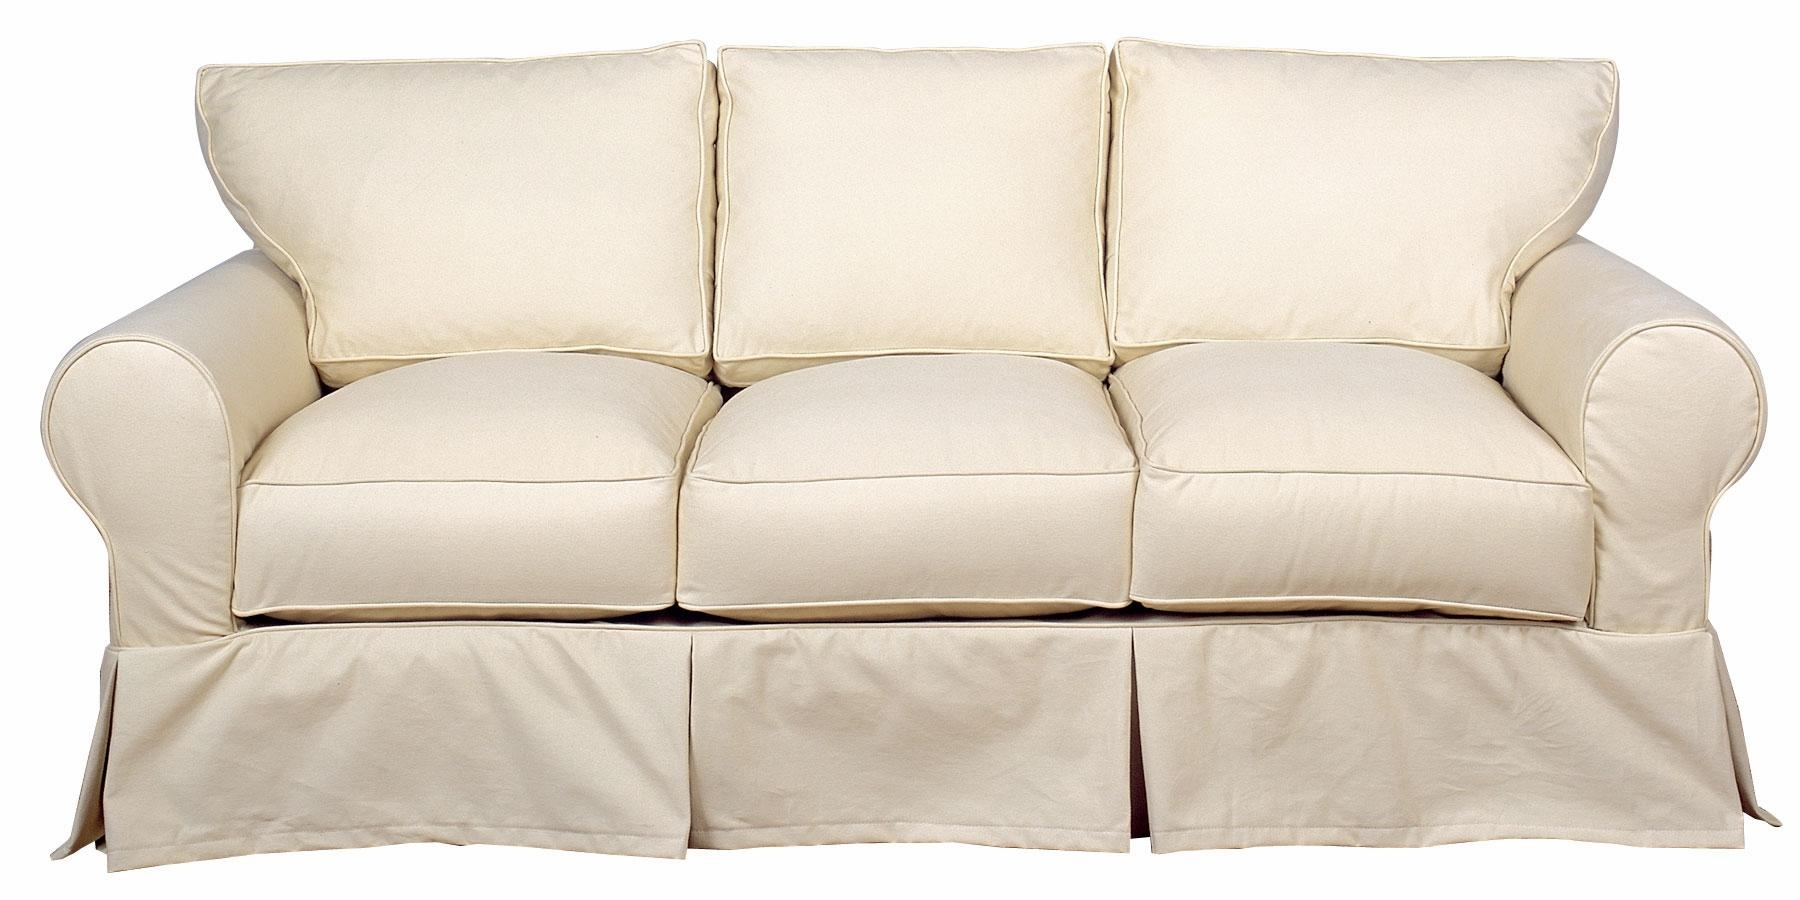 Slipcover 3 Cushion Queen Sleeper Sofa Within Slipcovers For Sleeper Sofas (Image 11 of 20)